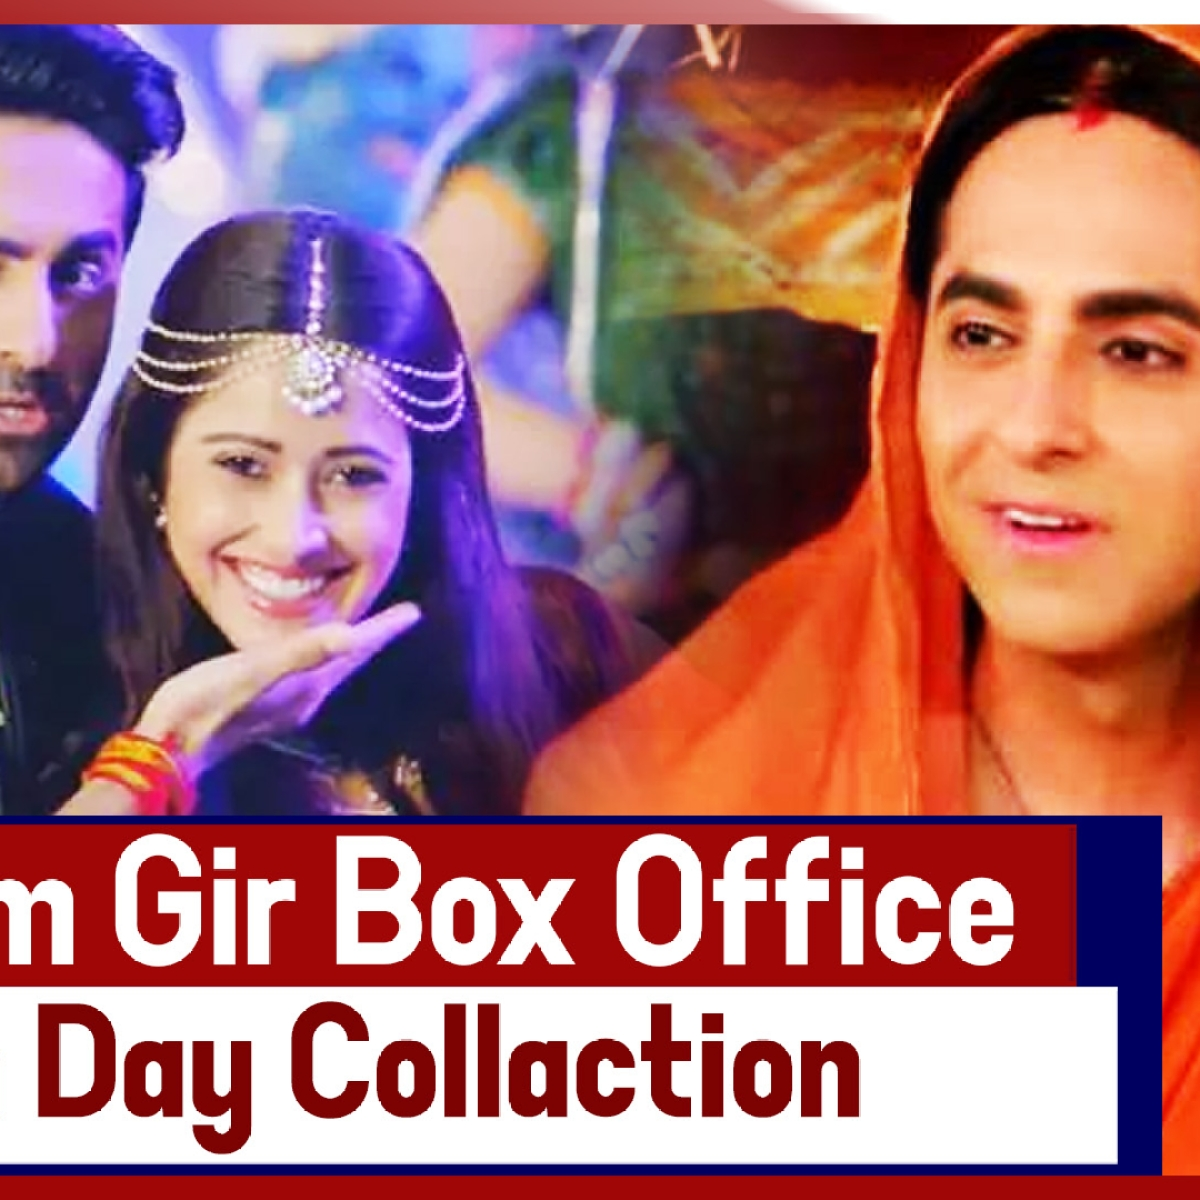 Dream Gir Box Office Collaction Day 4 | continues winning streak, crosses Rs 50 cr mark